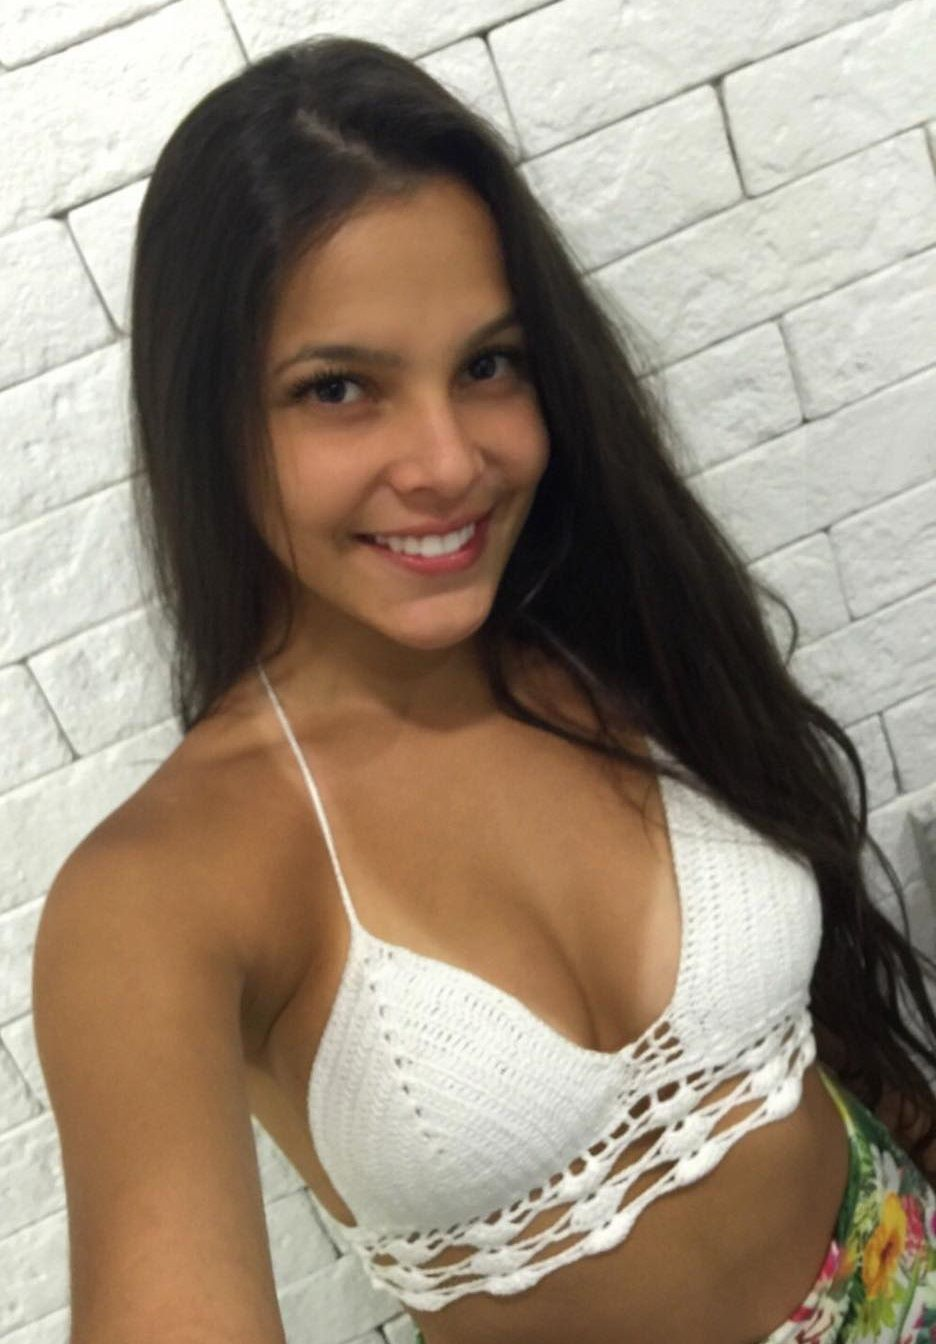 Emilly do BBB 17 - Fotos nua e pelada